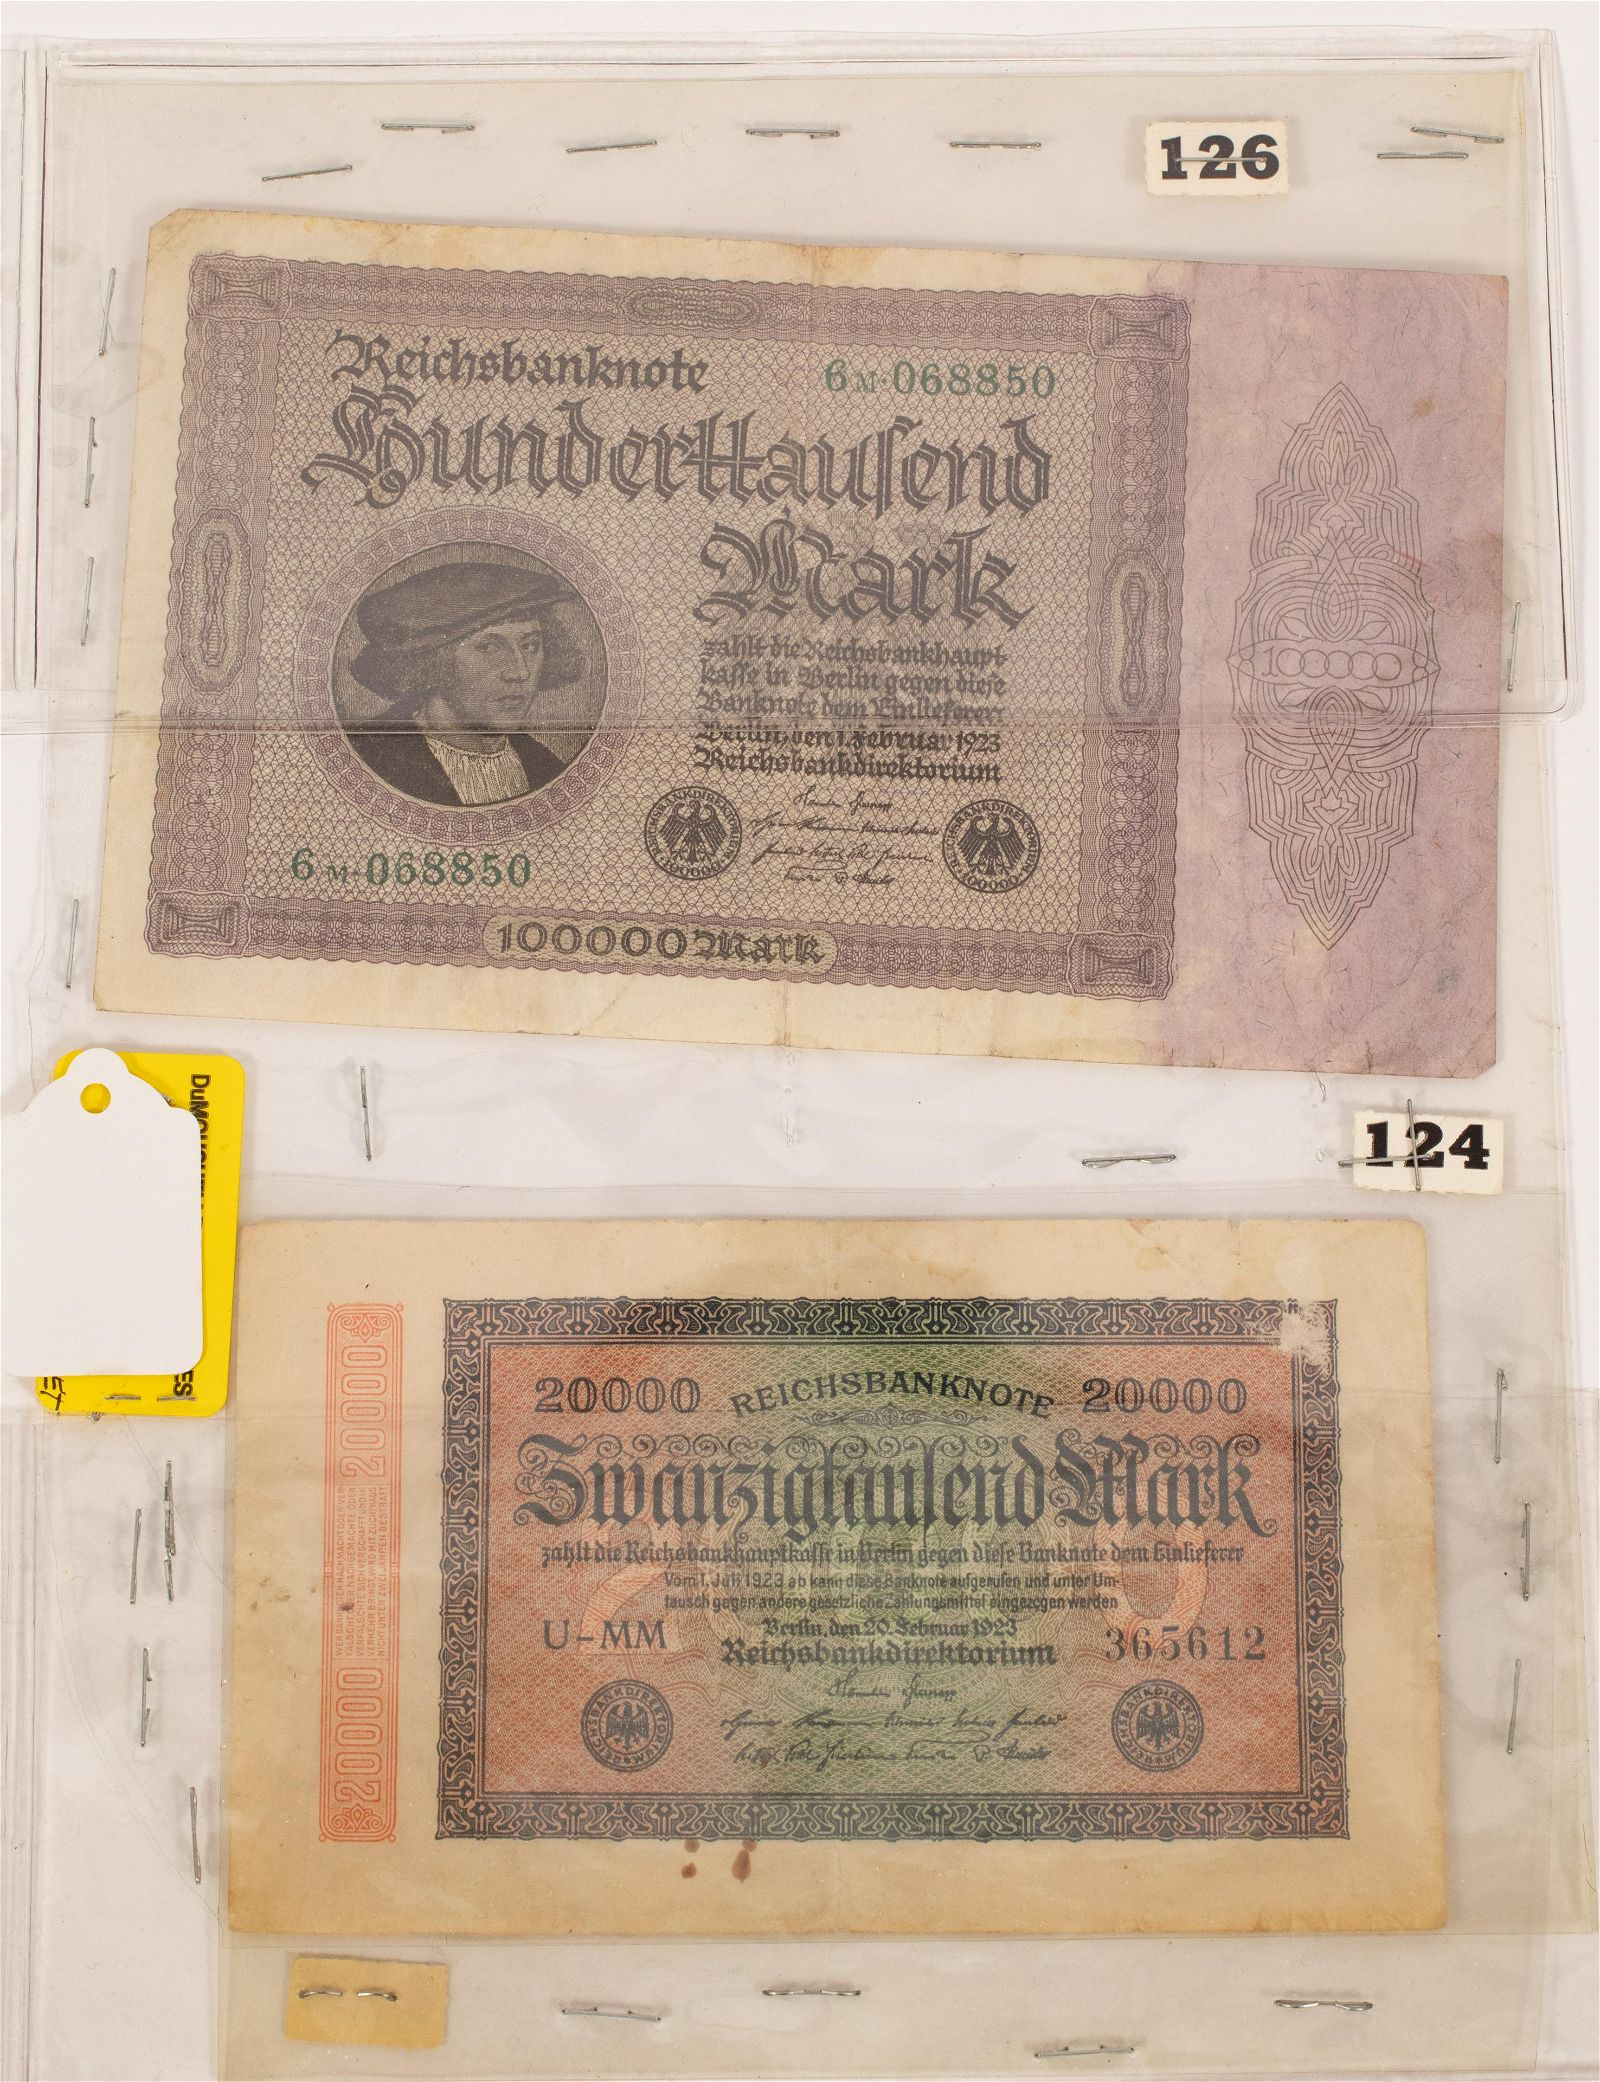 GERMAN PAPER CURRENCY NOTES 20,000. MARK, #3365612